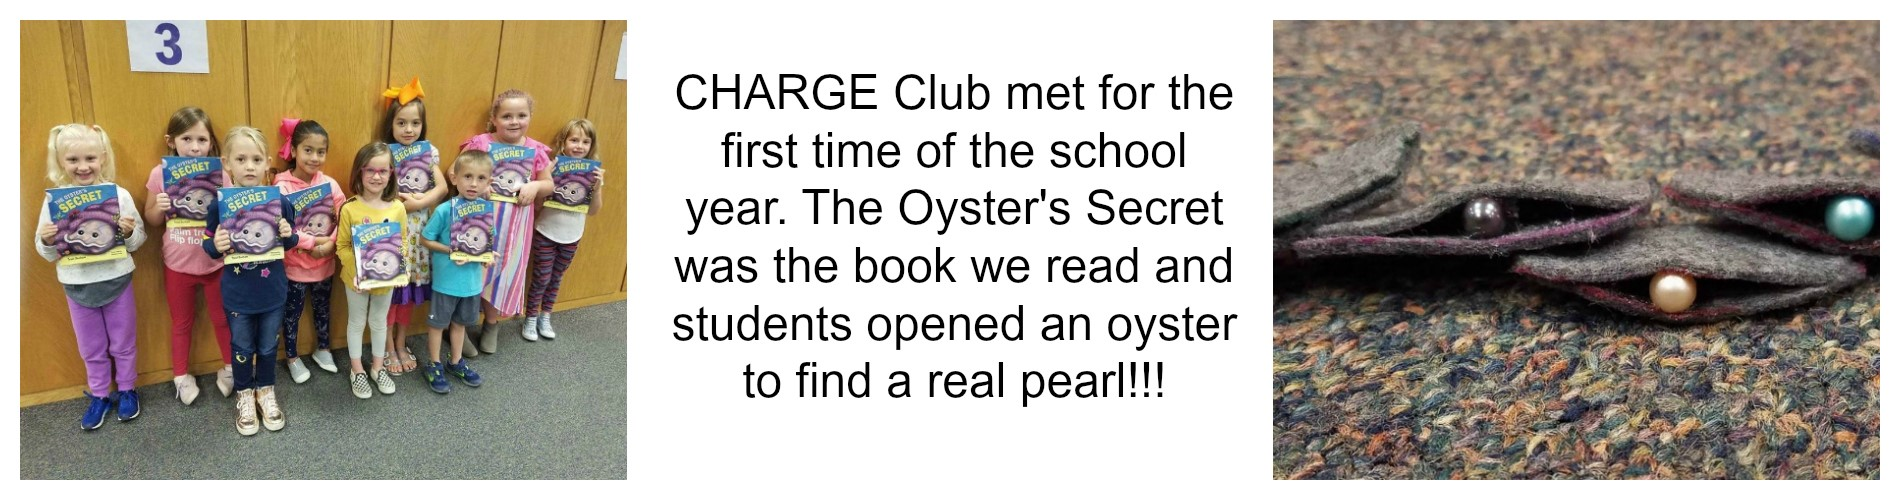 CHARGE Club meets and reads The Oyster's Secret.